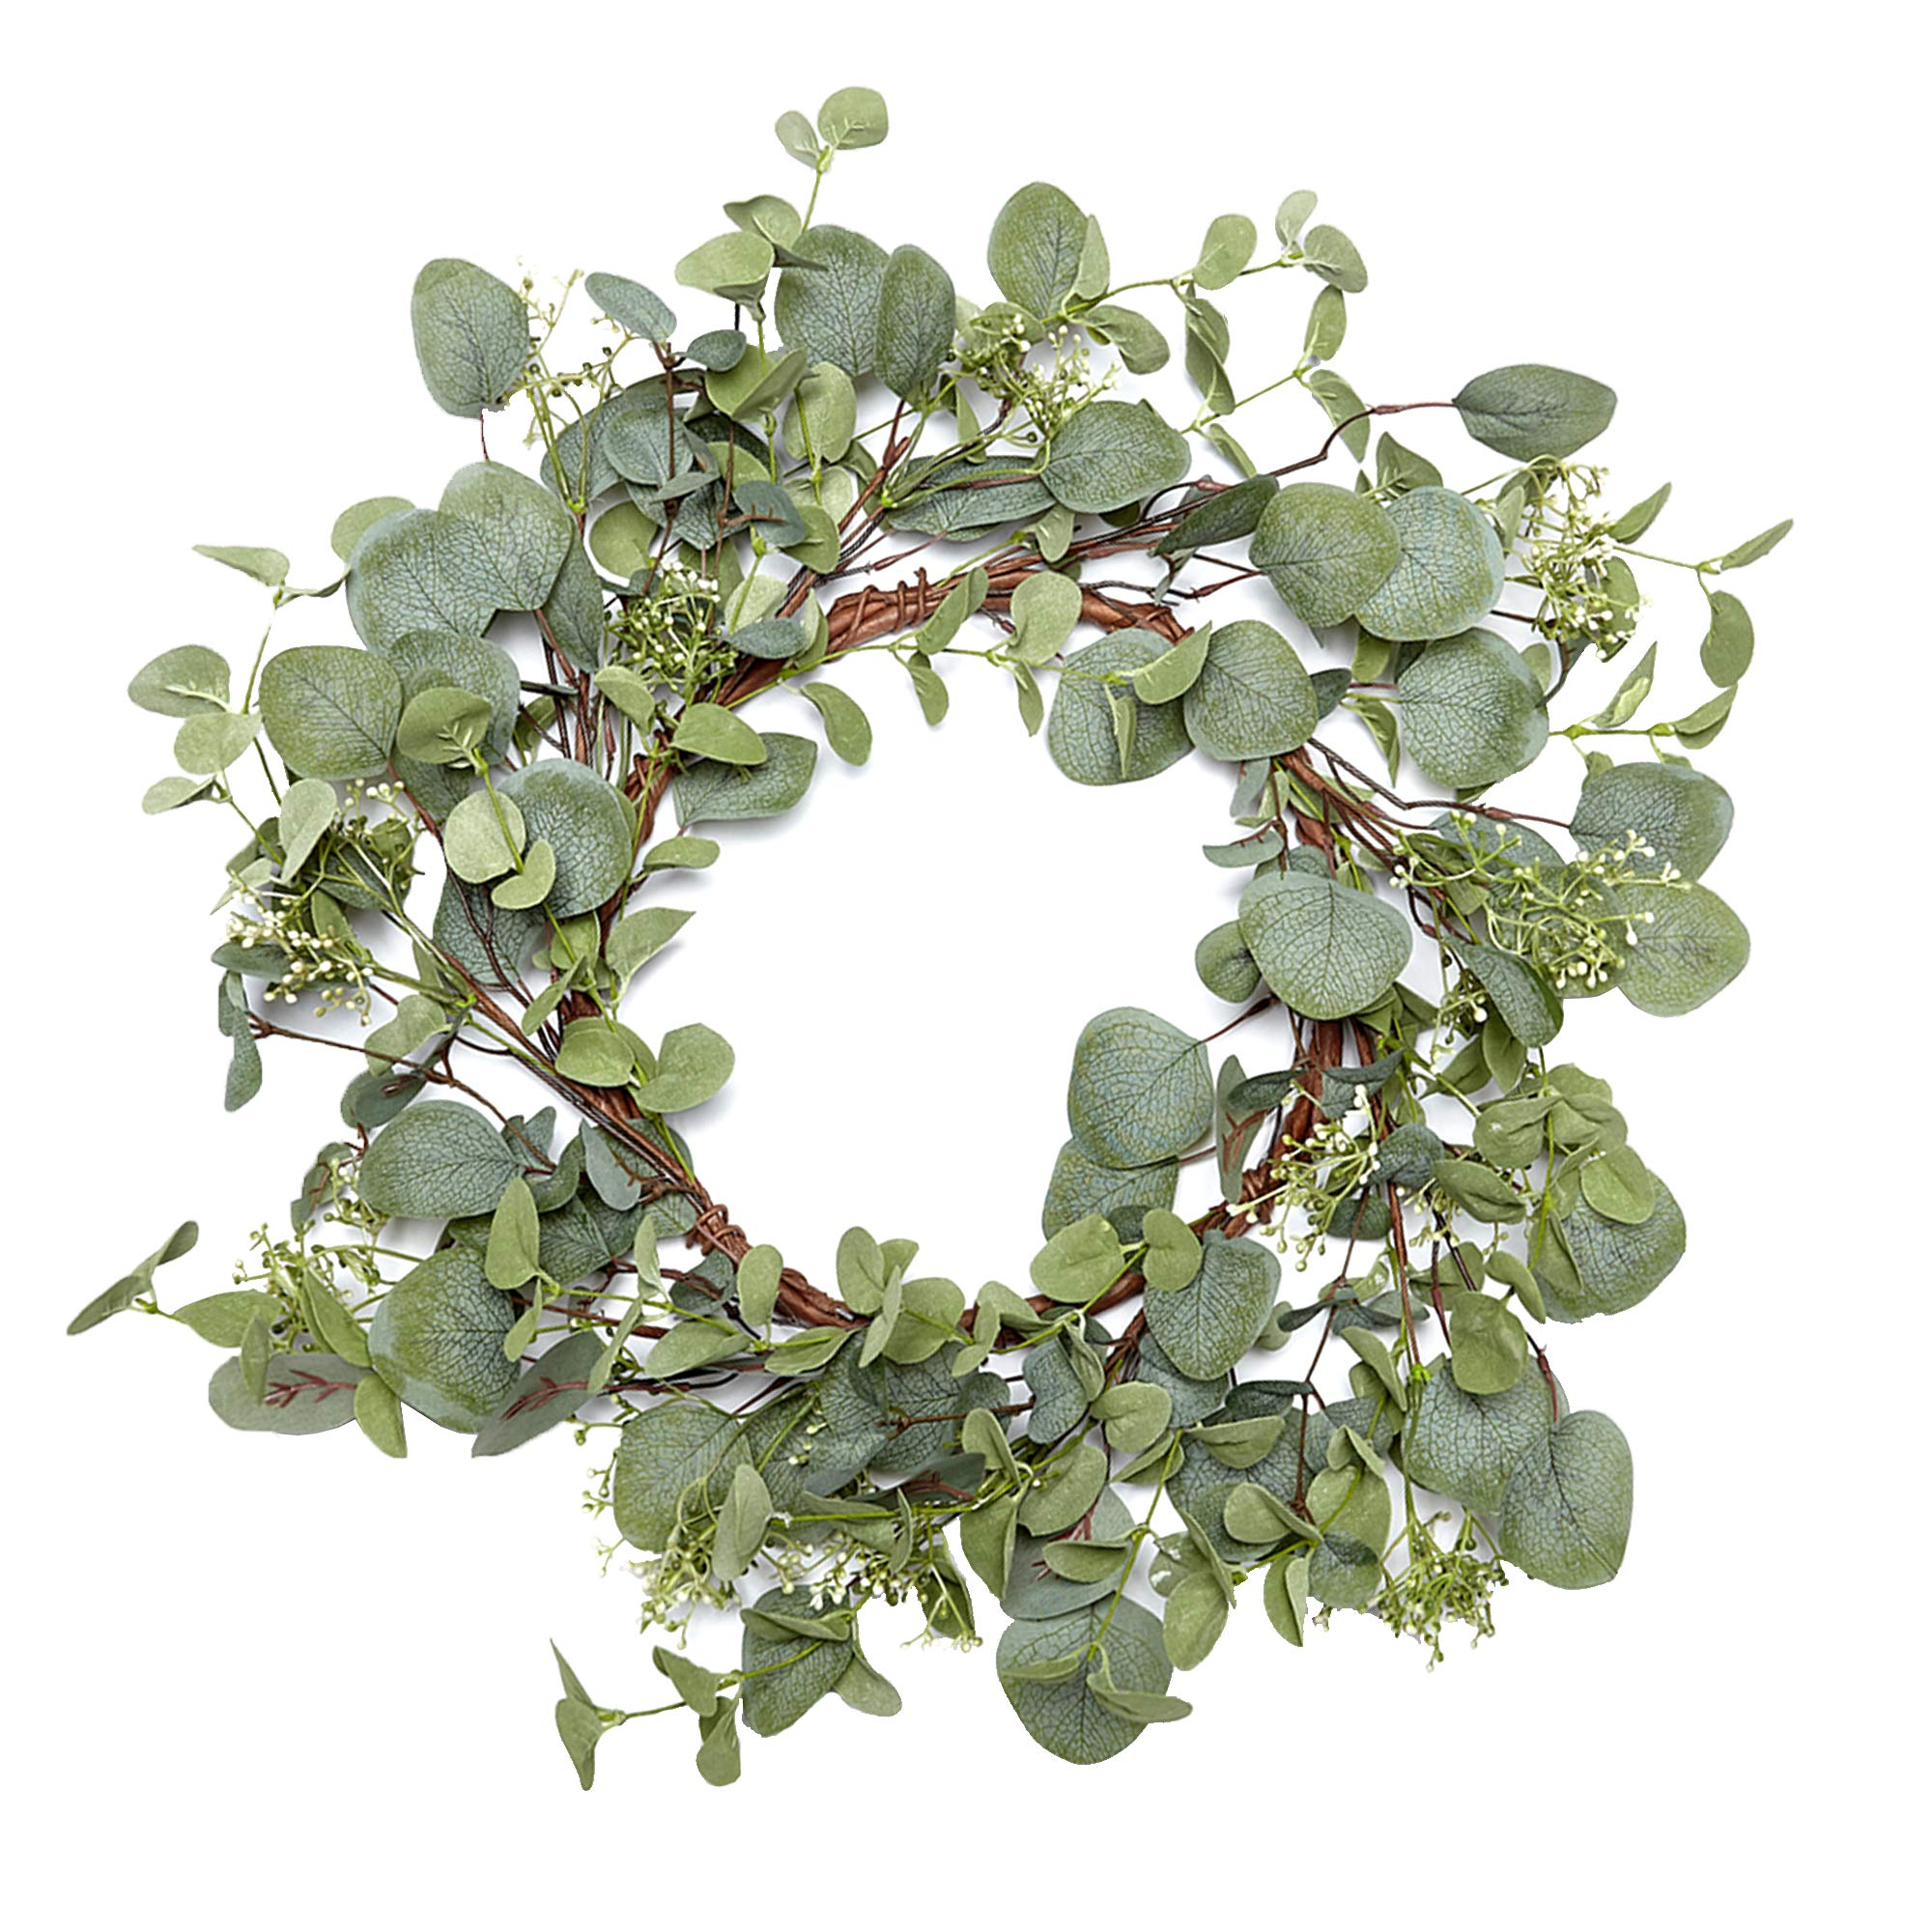 VGIA Green Leaf Eucalyptus Wreath for Summer/Fall Festival Celebration Front Door/Wall/Fireplace Laurel/Eucalyptus Hanger Home Relaxed Decor by VGIA